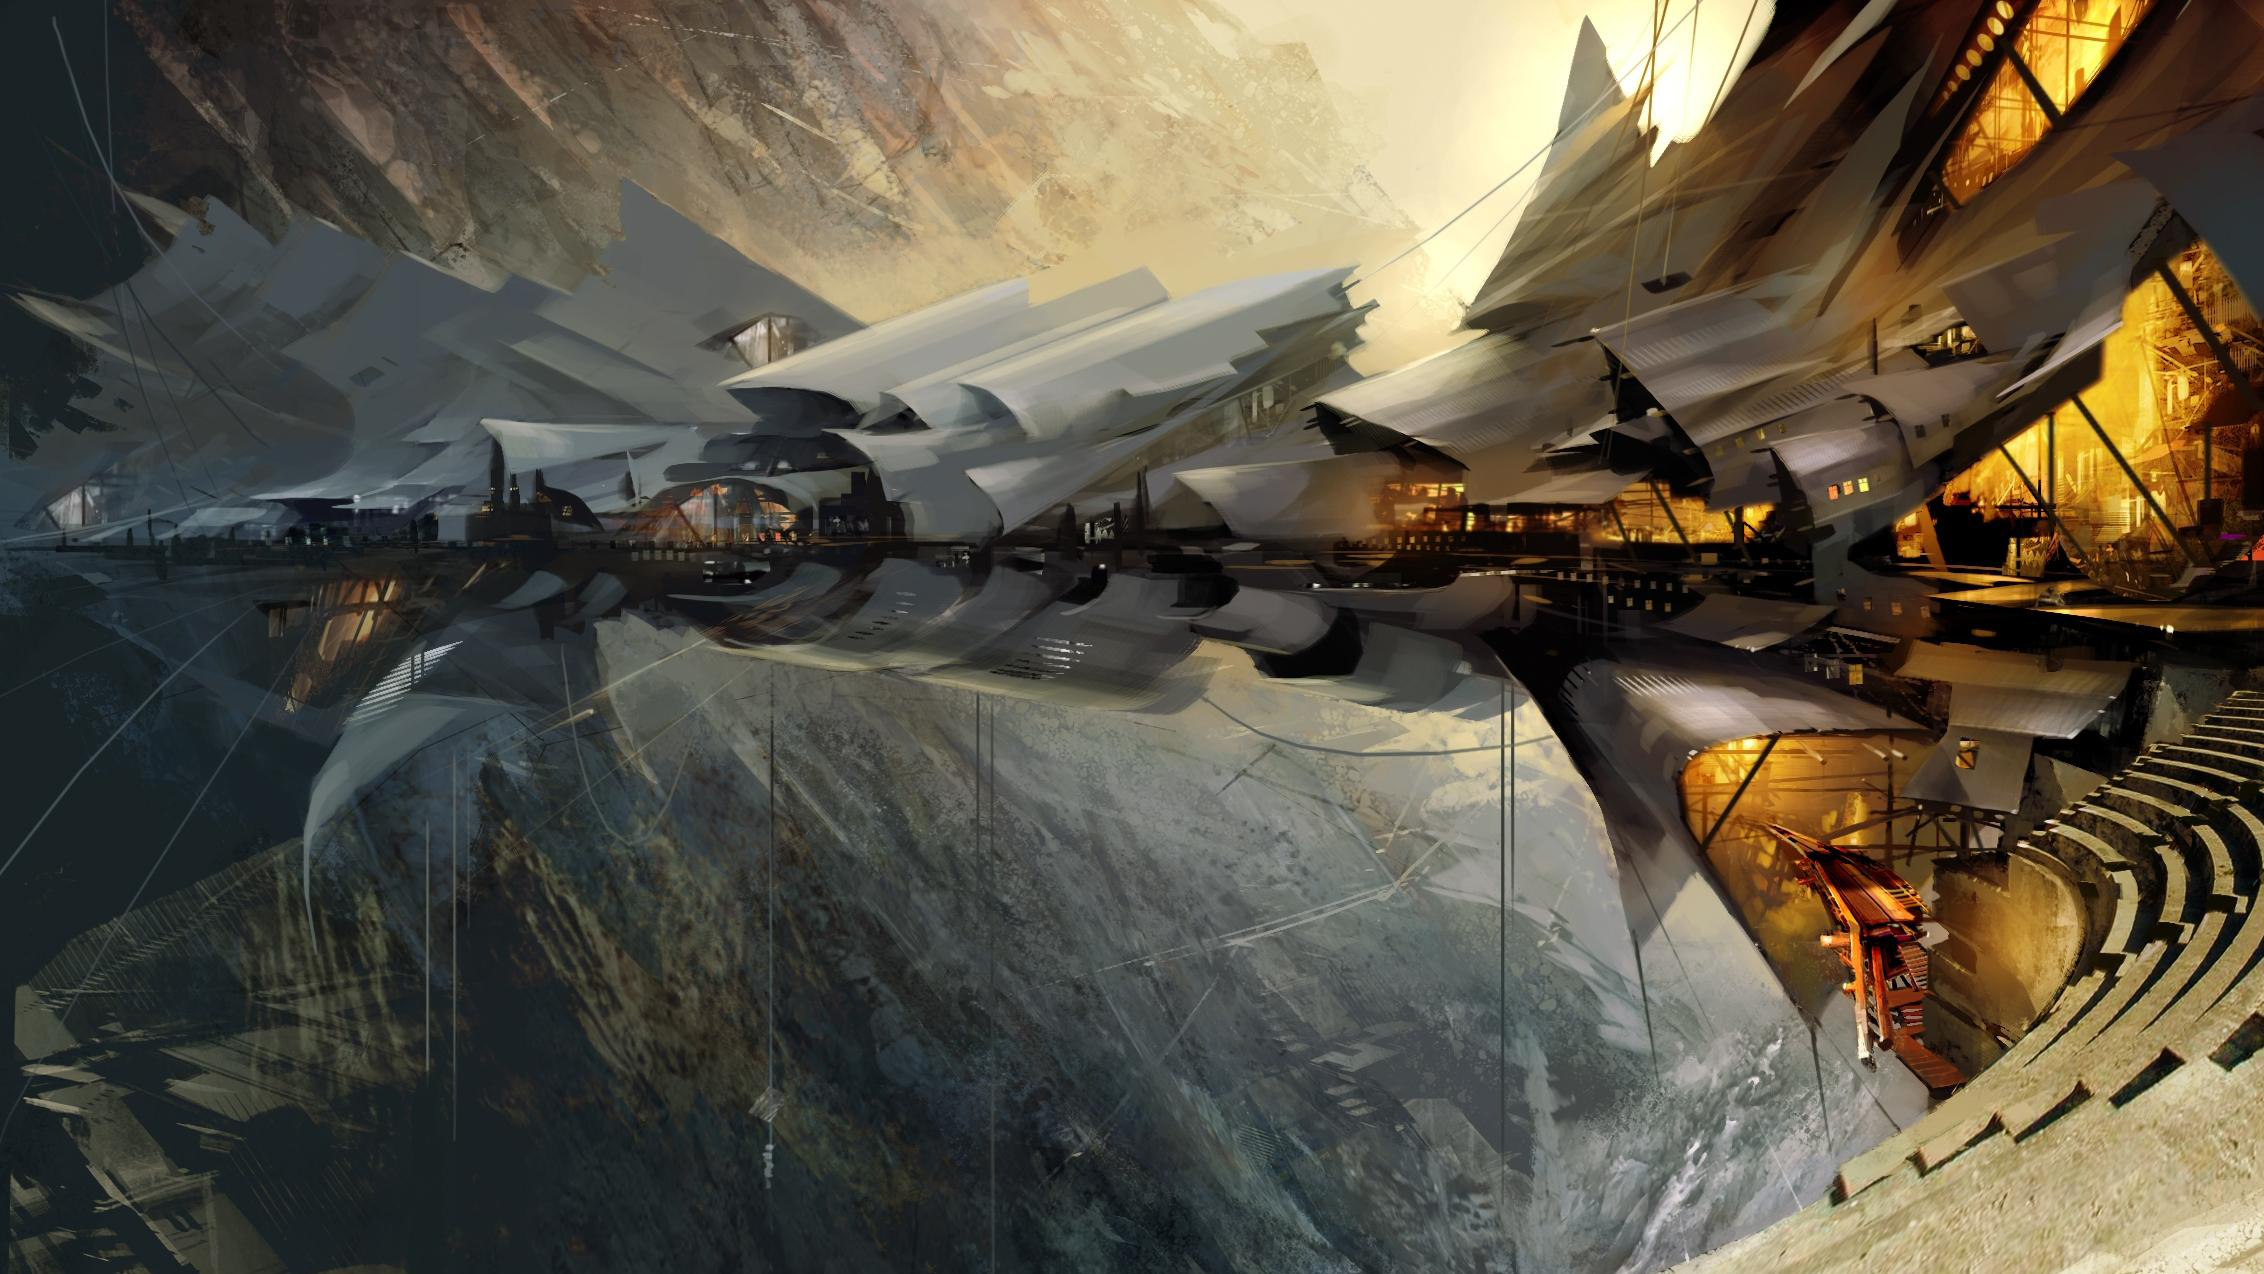 Steampunk Full HD Wallpaper And Background Image